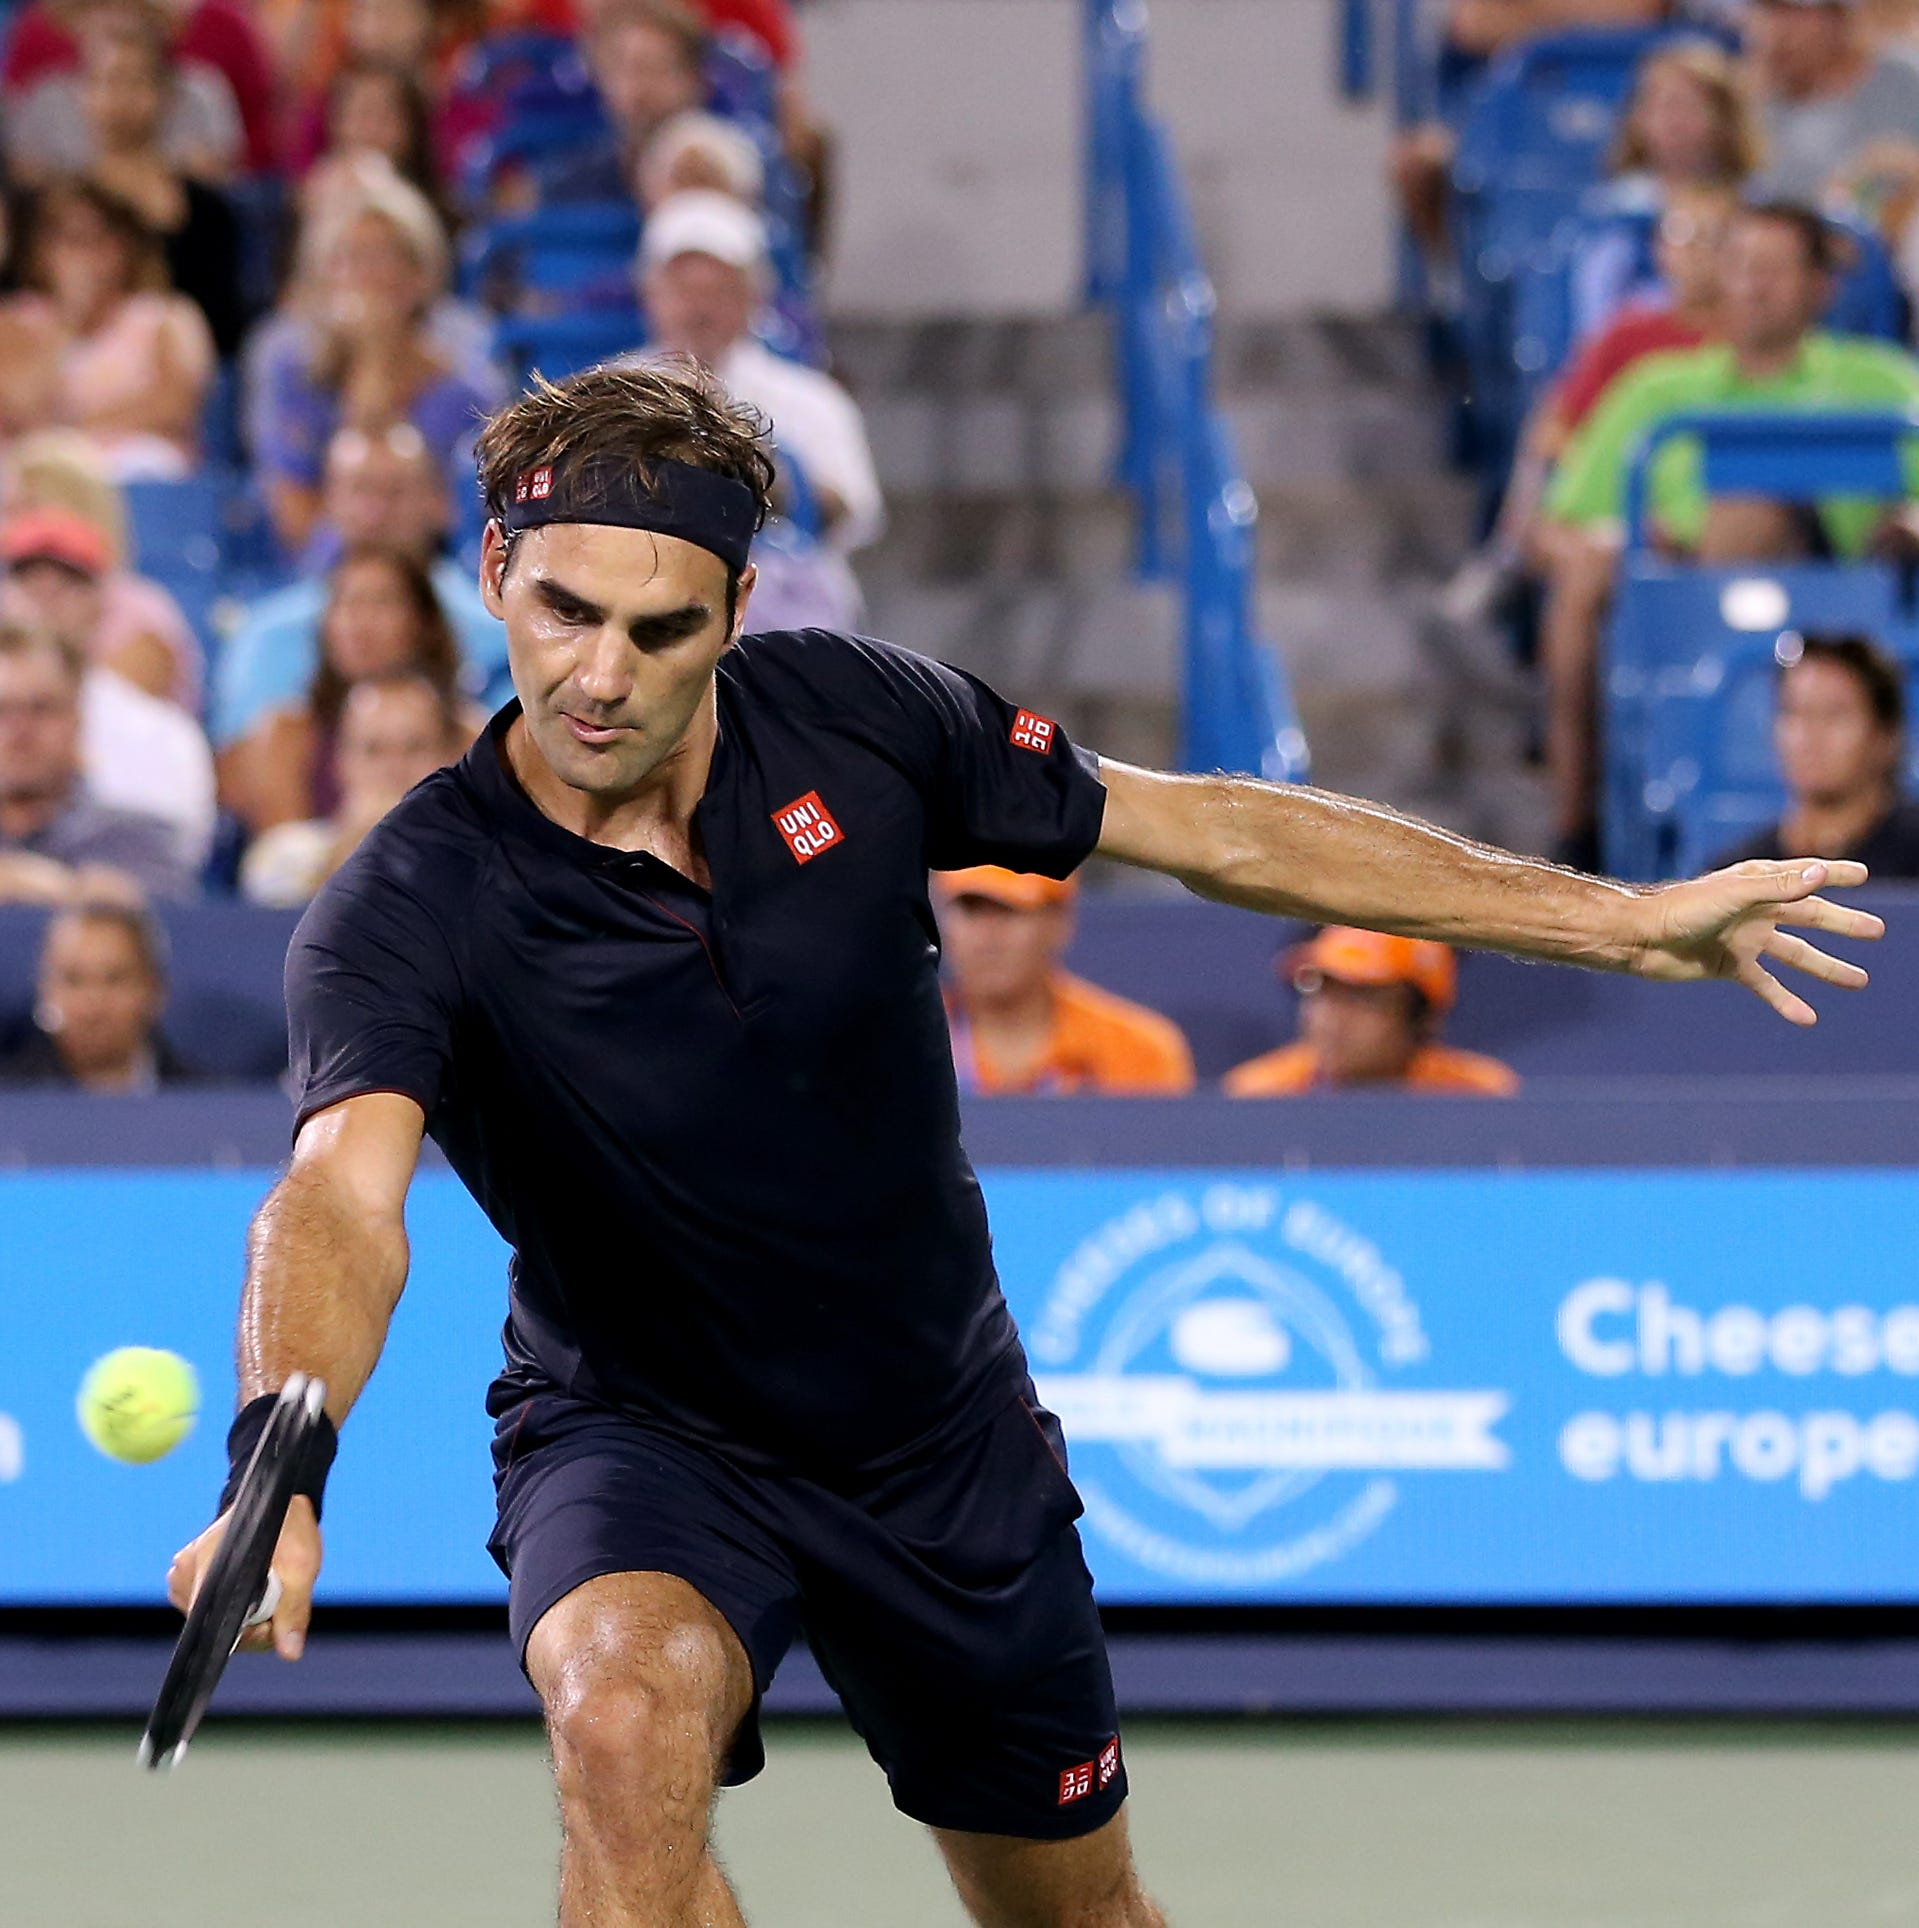 Roger Federer advances to Western & Southern final after opponent retires from match